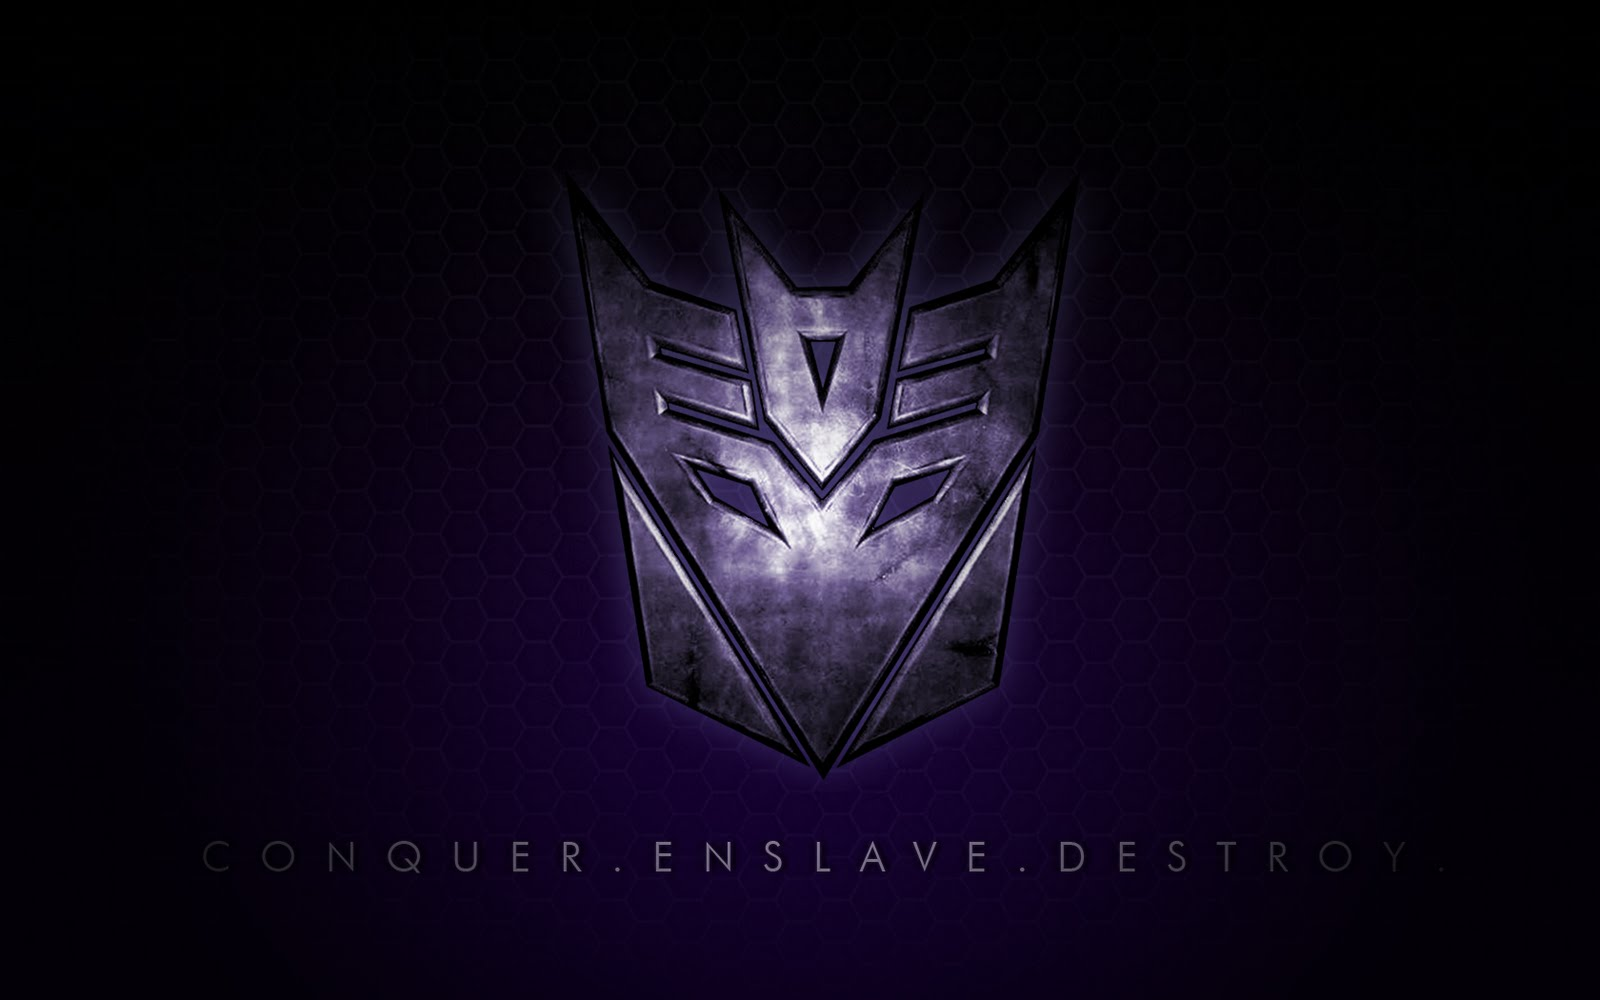 Decepticons Wallpaper by James Brunner about 15 layers in photoshop 1600x1000